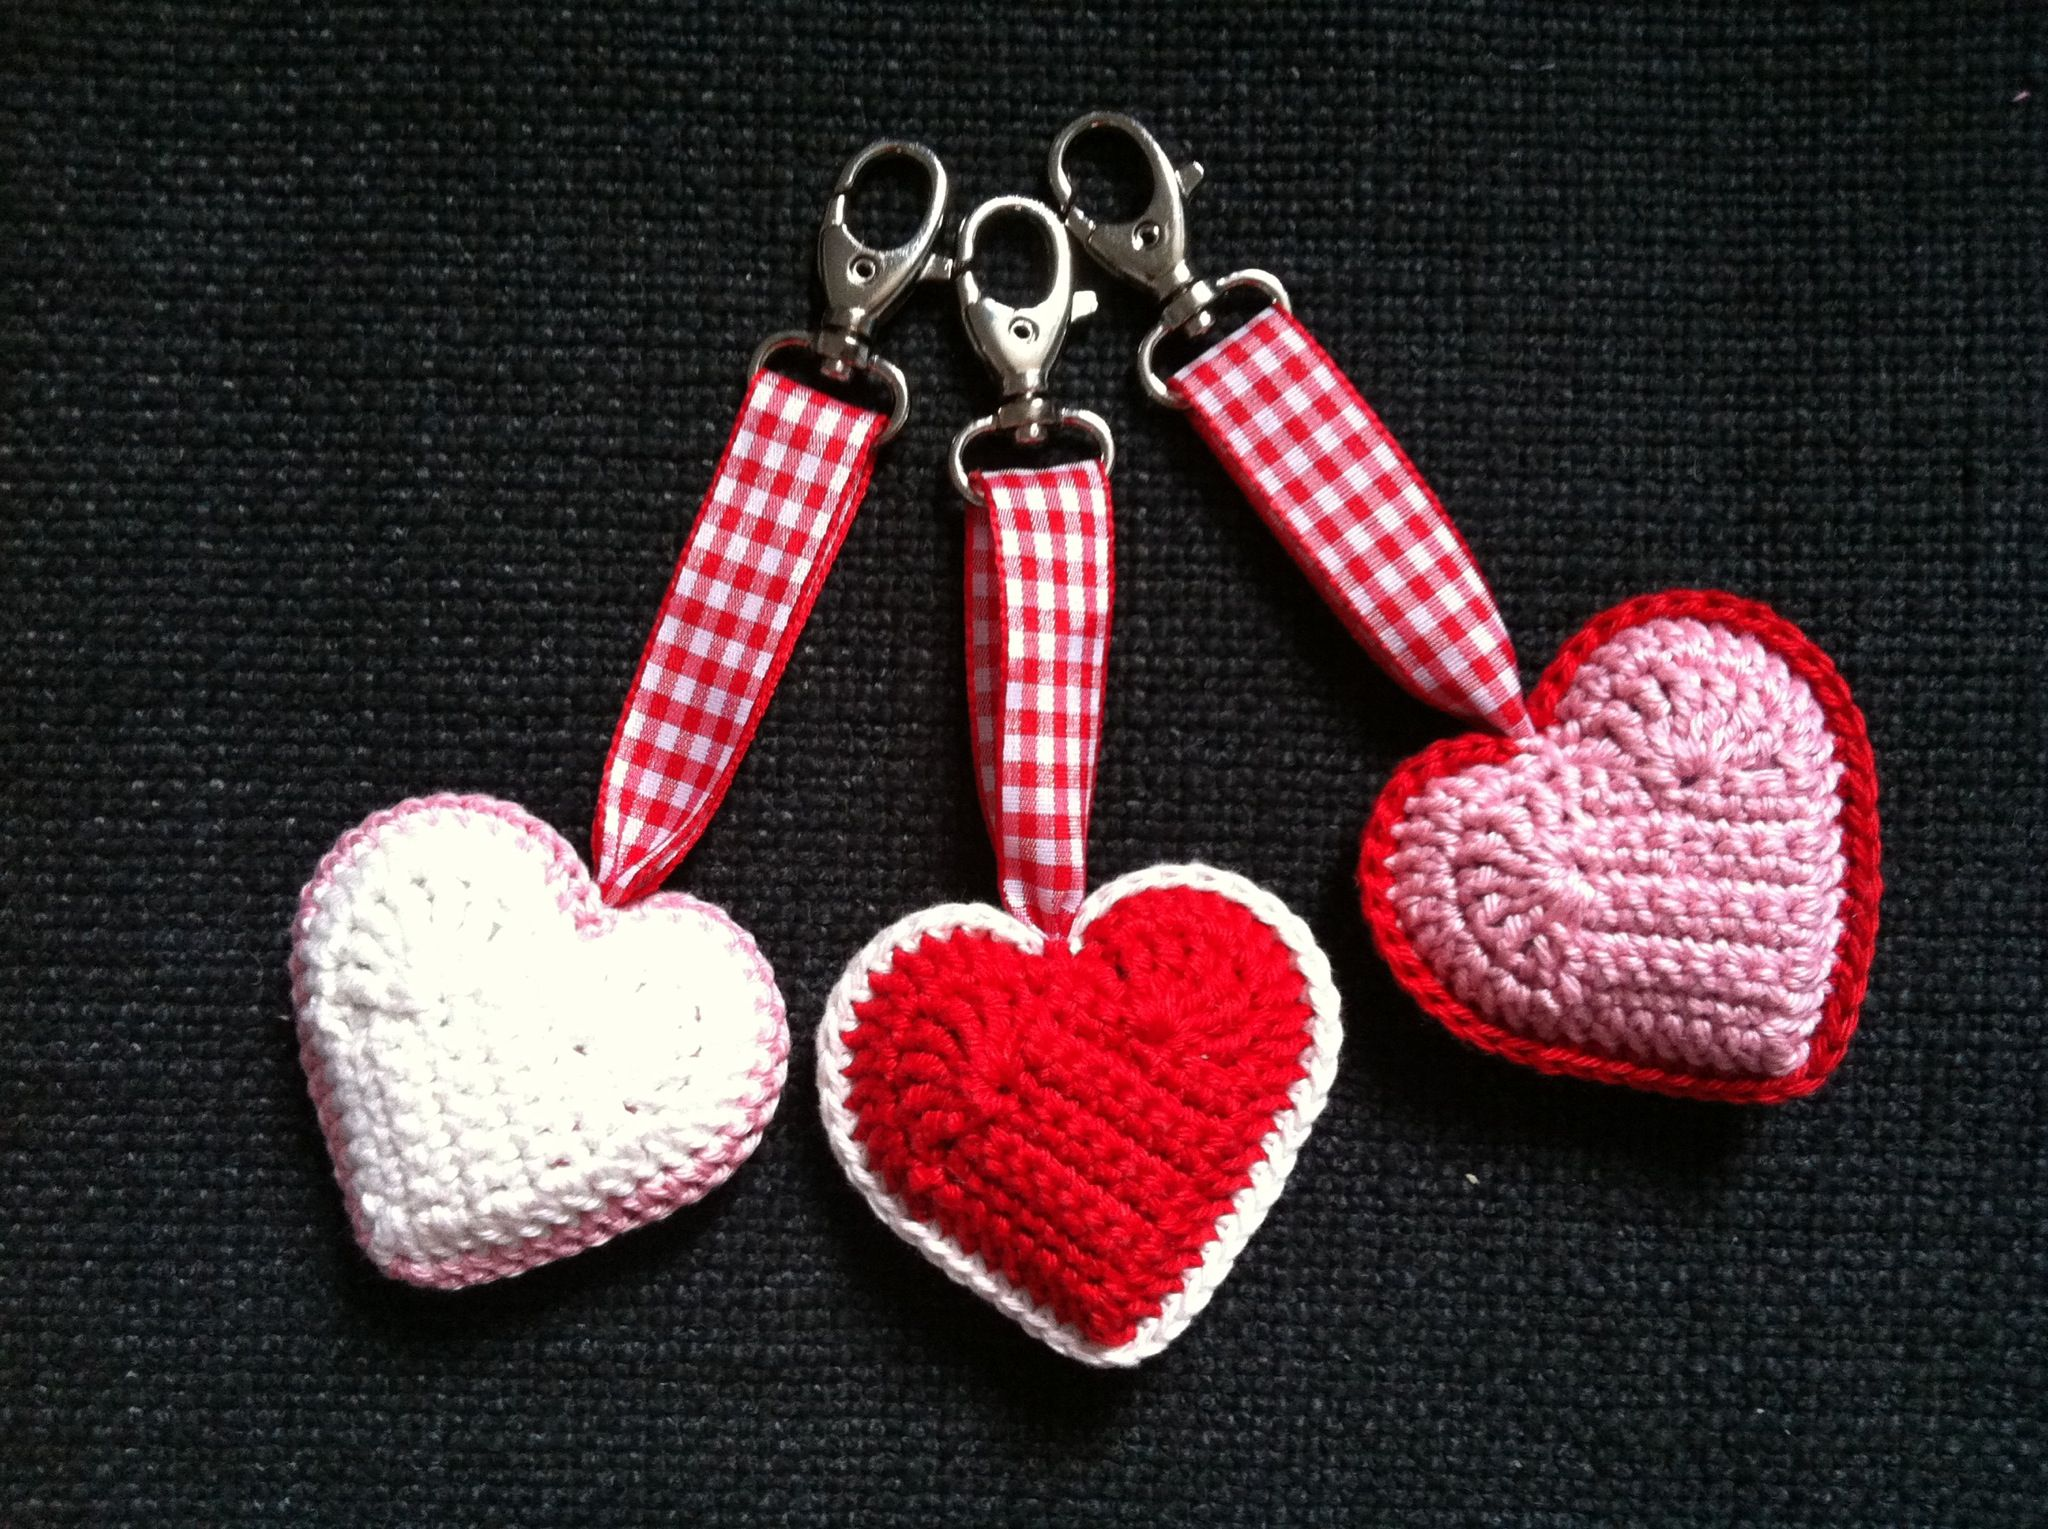 Haarspeld Poot Key Ring Crochet Heart Made By Me Crochet Heart